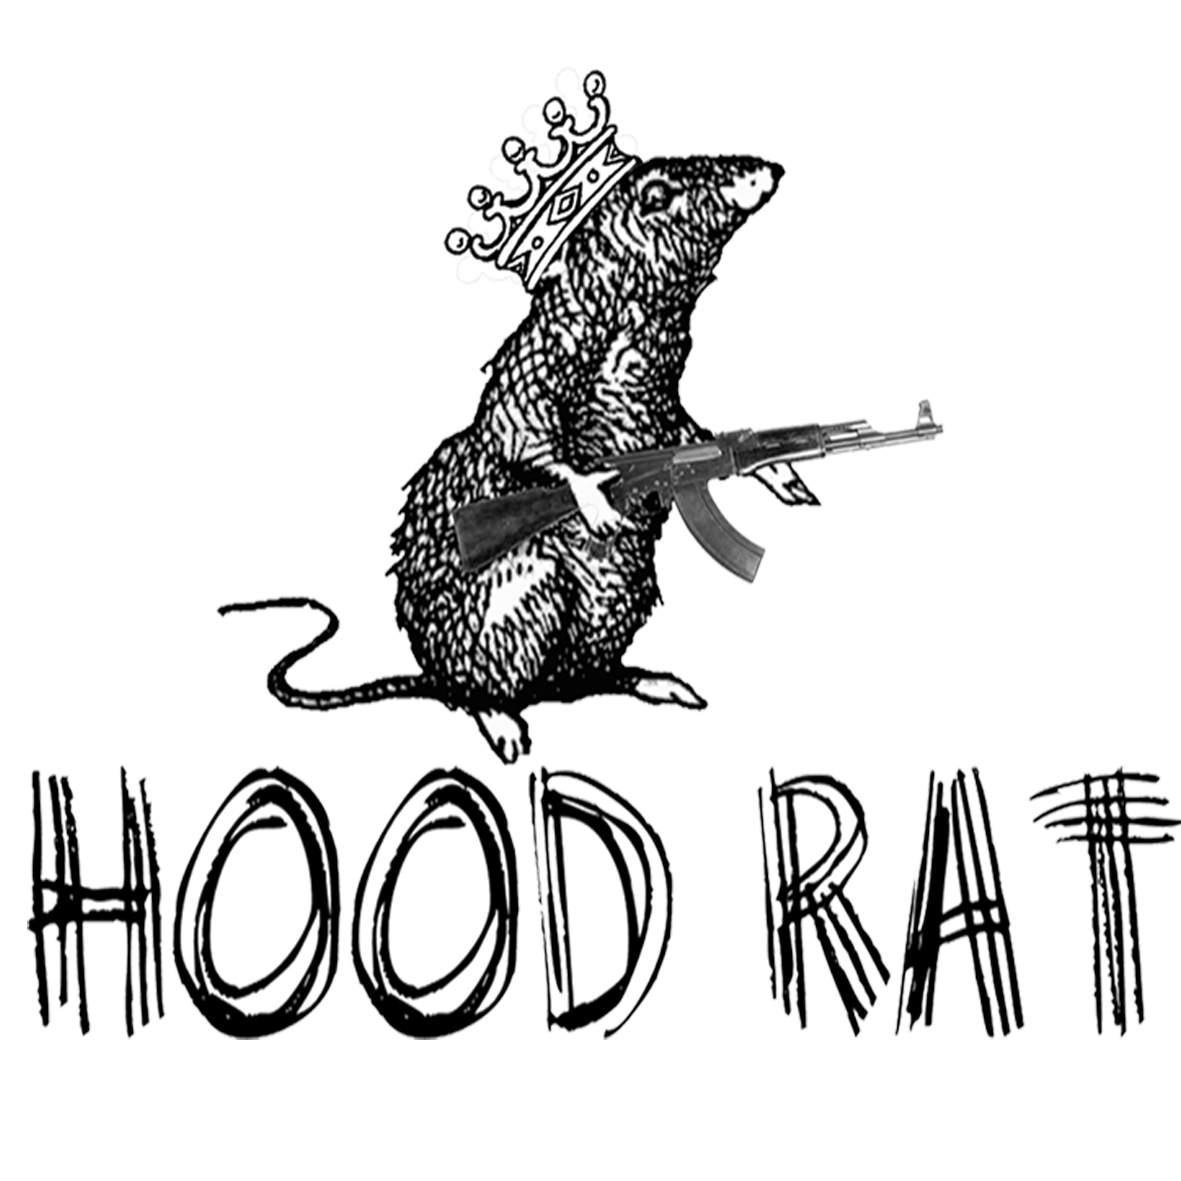 clever logos with hidden symbolism rat by daniel carlmatz